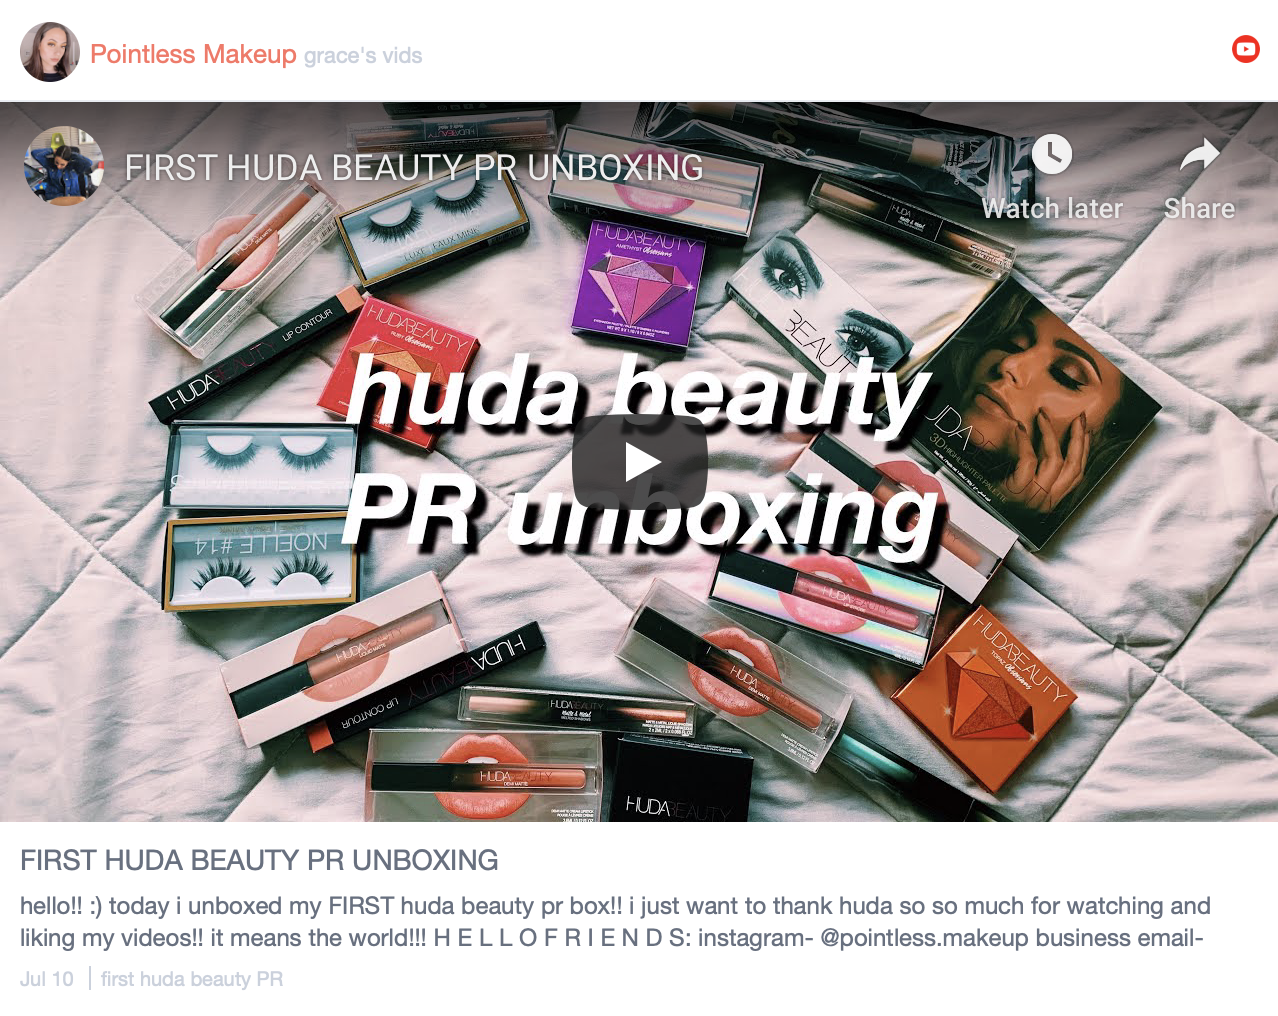 Huda Beauty wins the hearts of Mid-Influencers according to Traack's SOI Beauty 2019